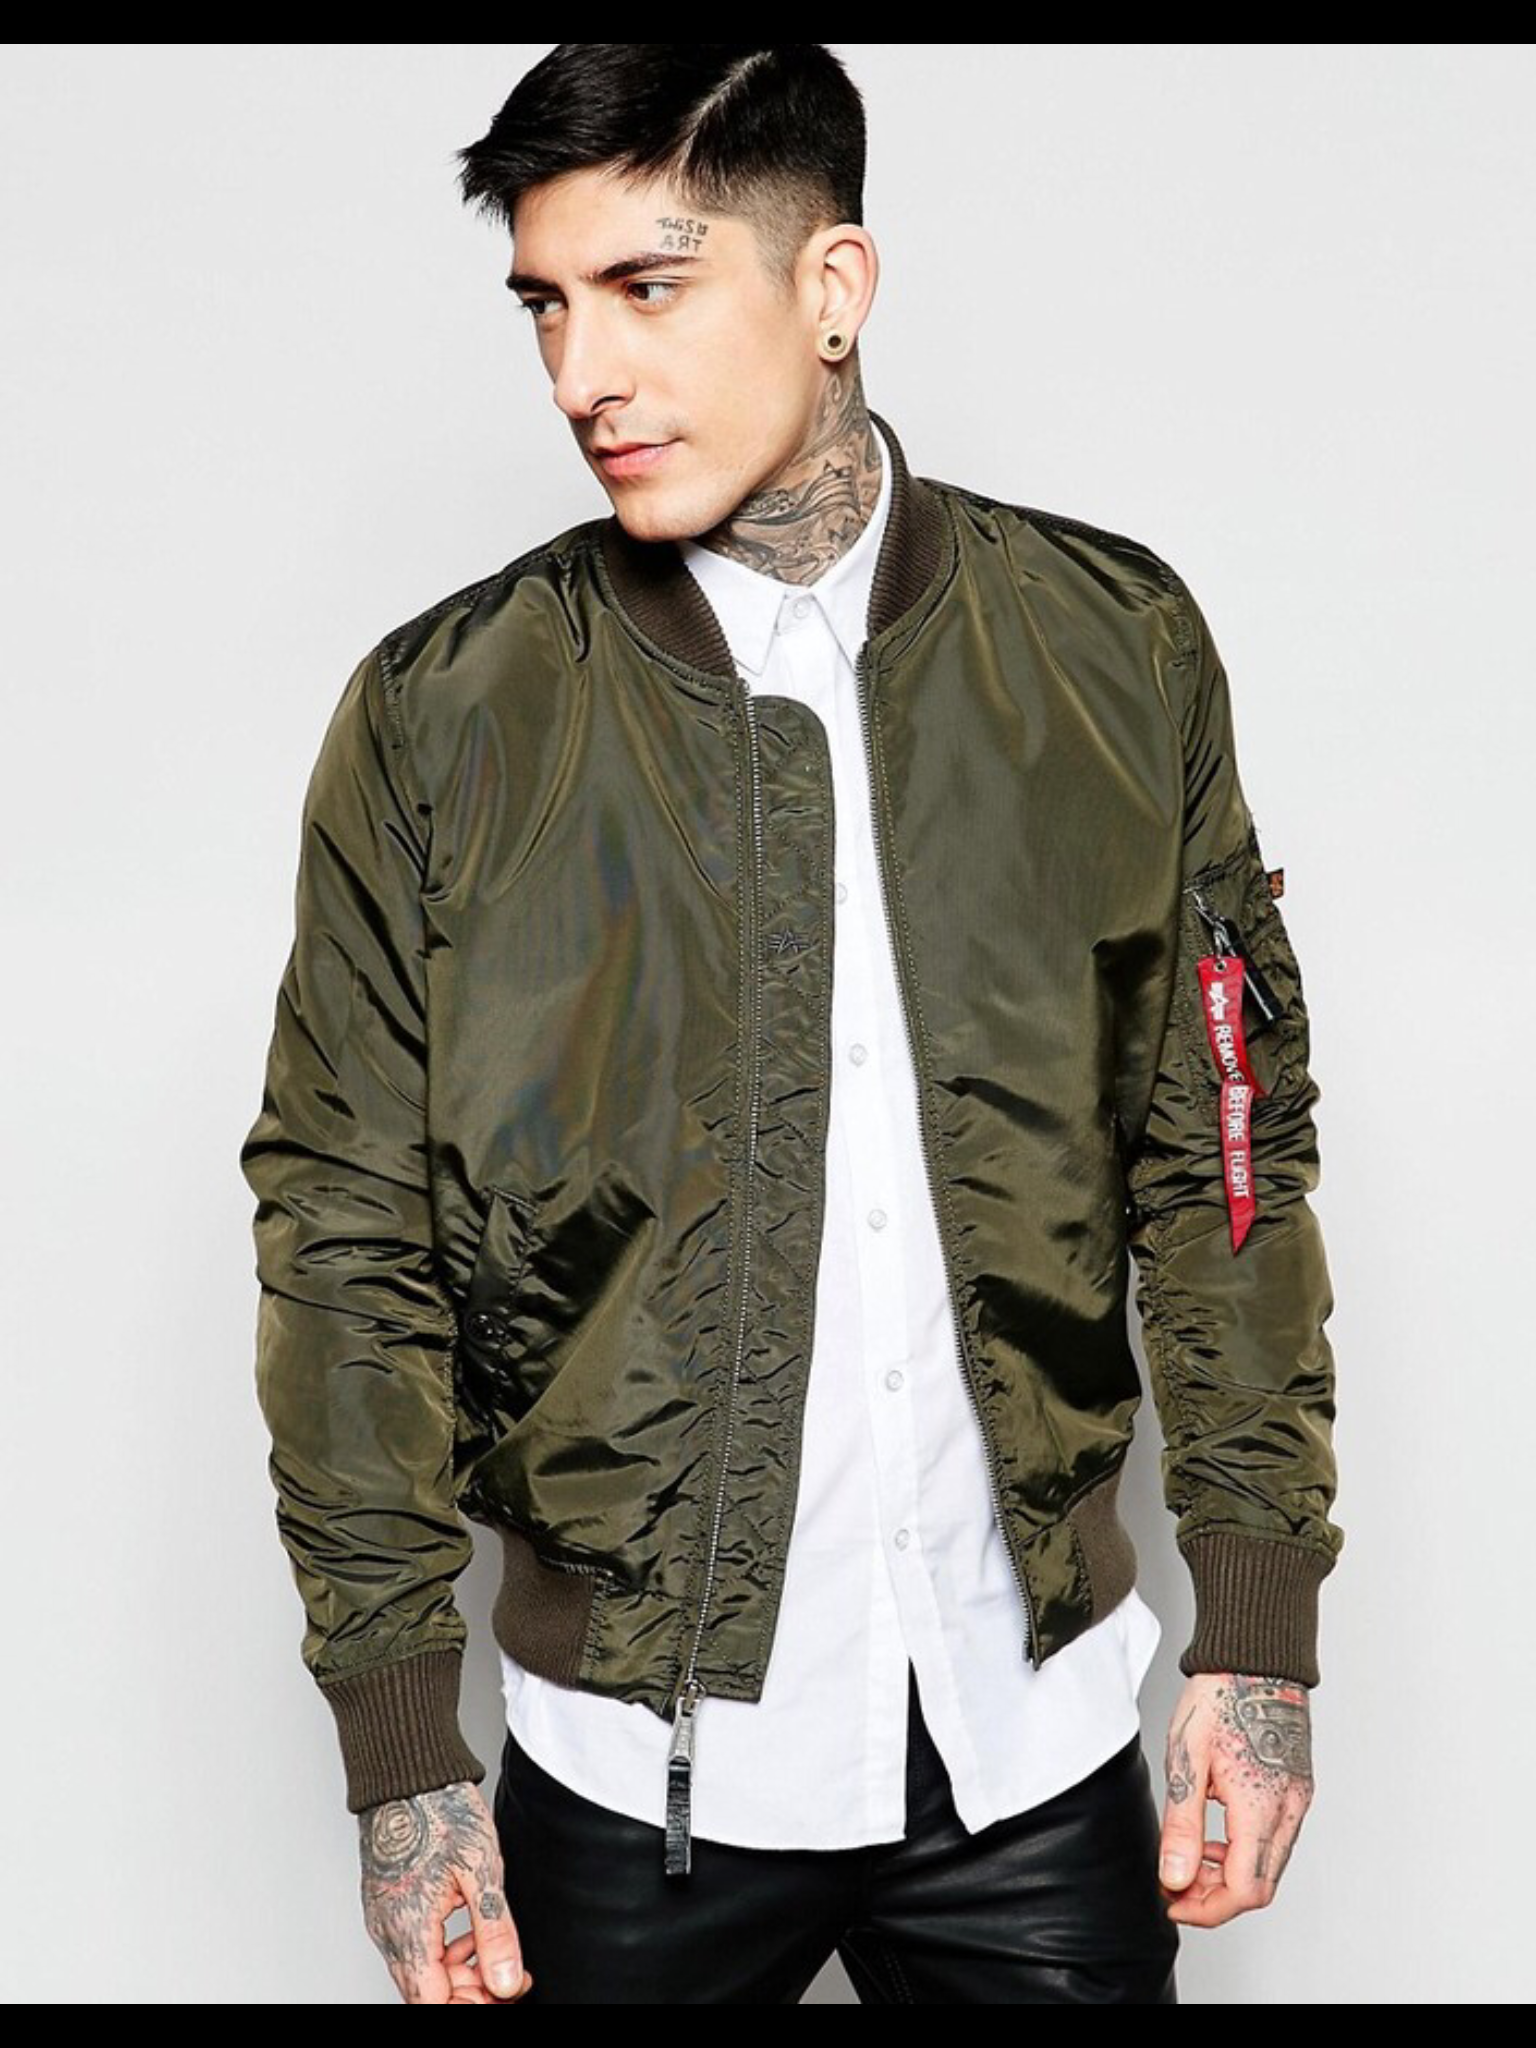 Pin by Tay Chacarcus on Fashion !!! Men's !!! Bomber